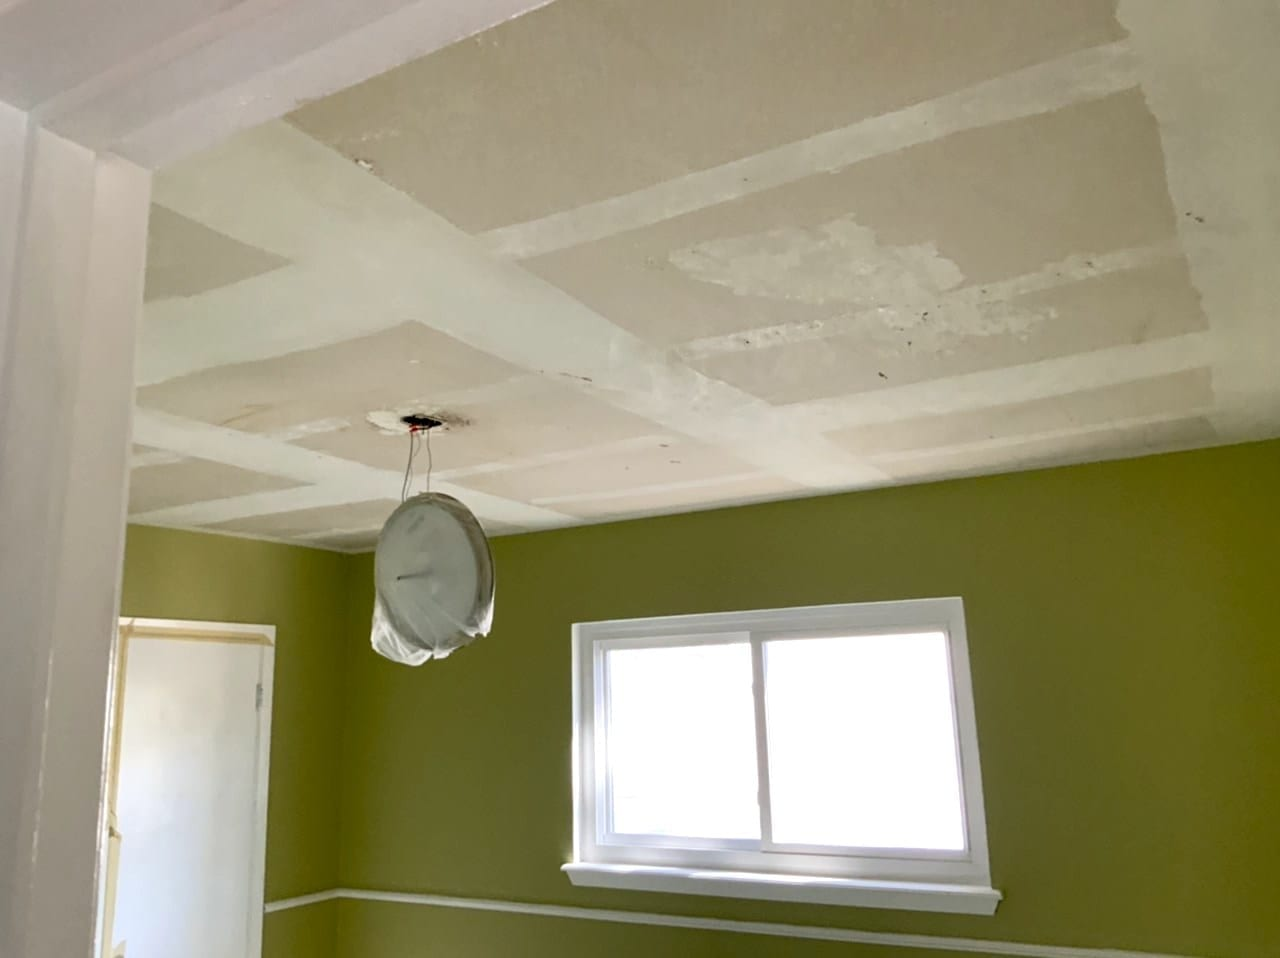 green bedroom ceiling after scraping